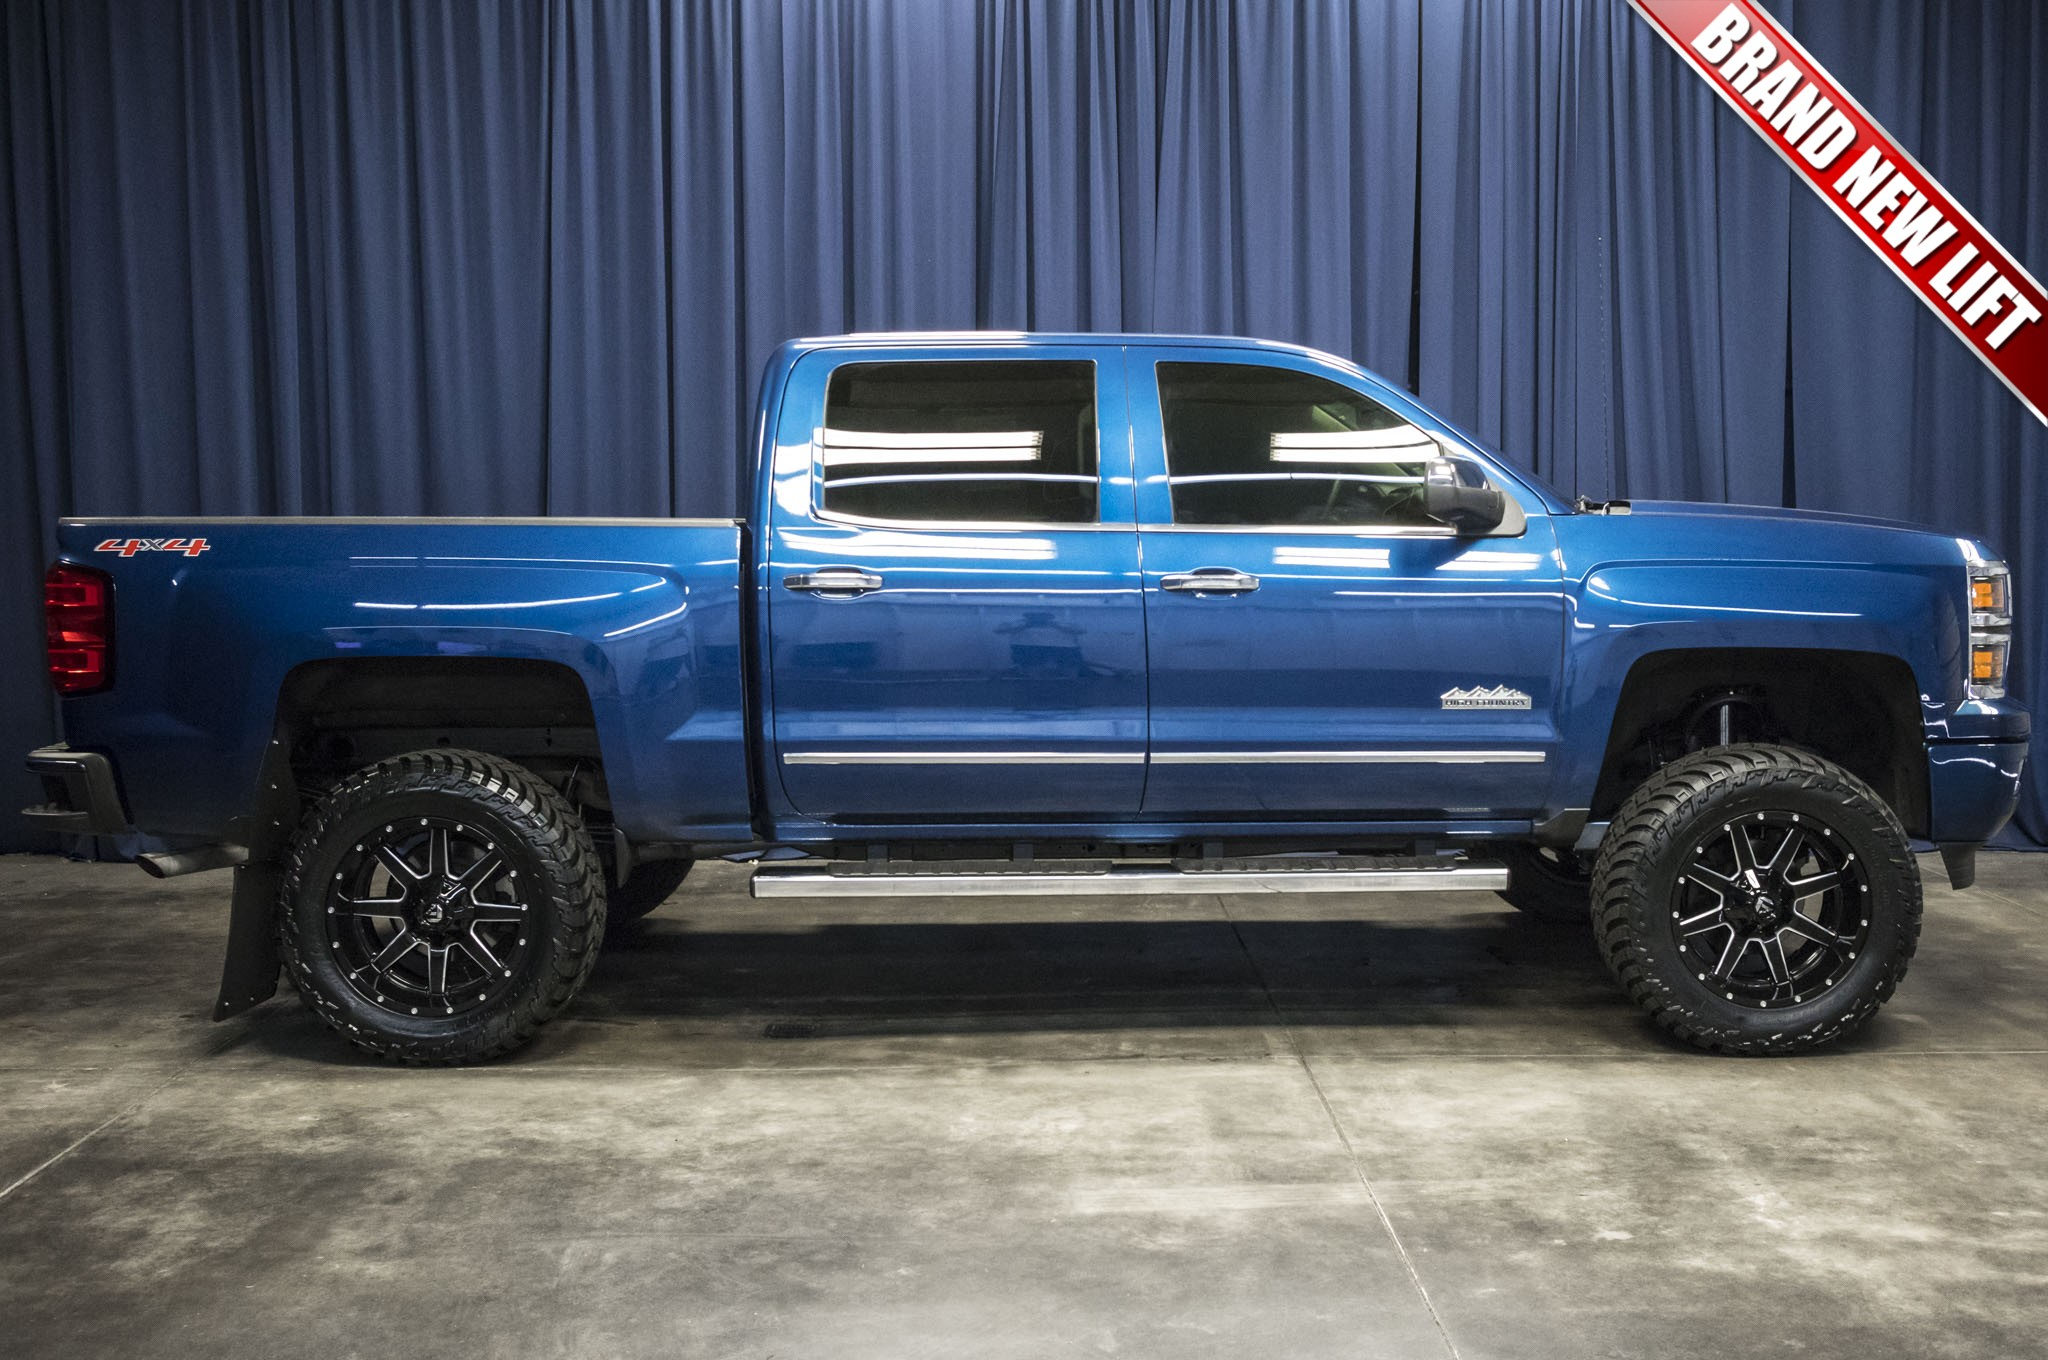 silv new country content gm may silverado adds rugged with news luxury high silveradohighctry en media chevrolet us pages detail